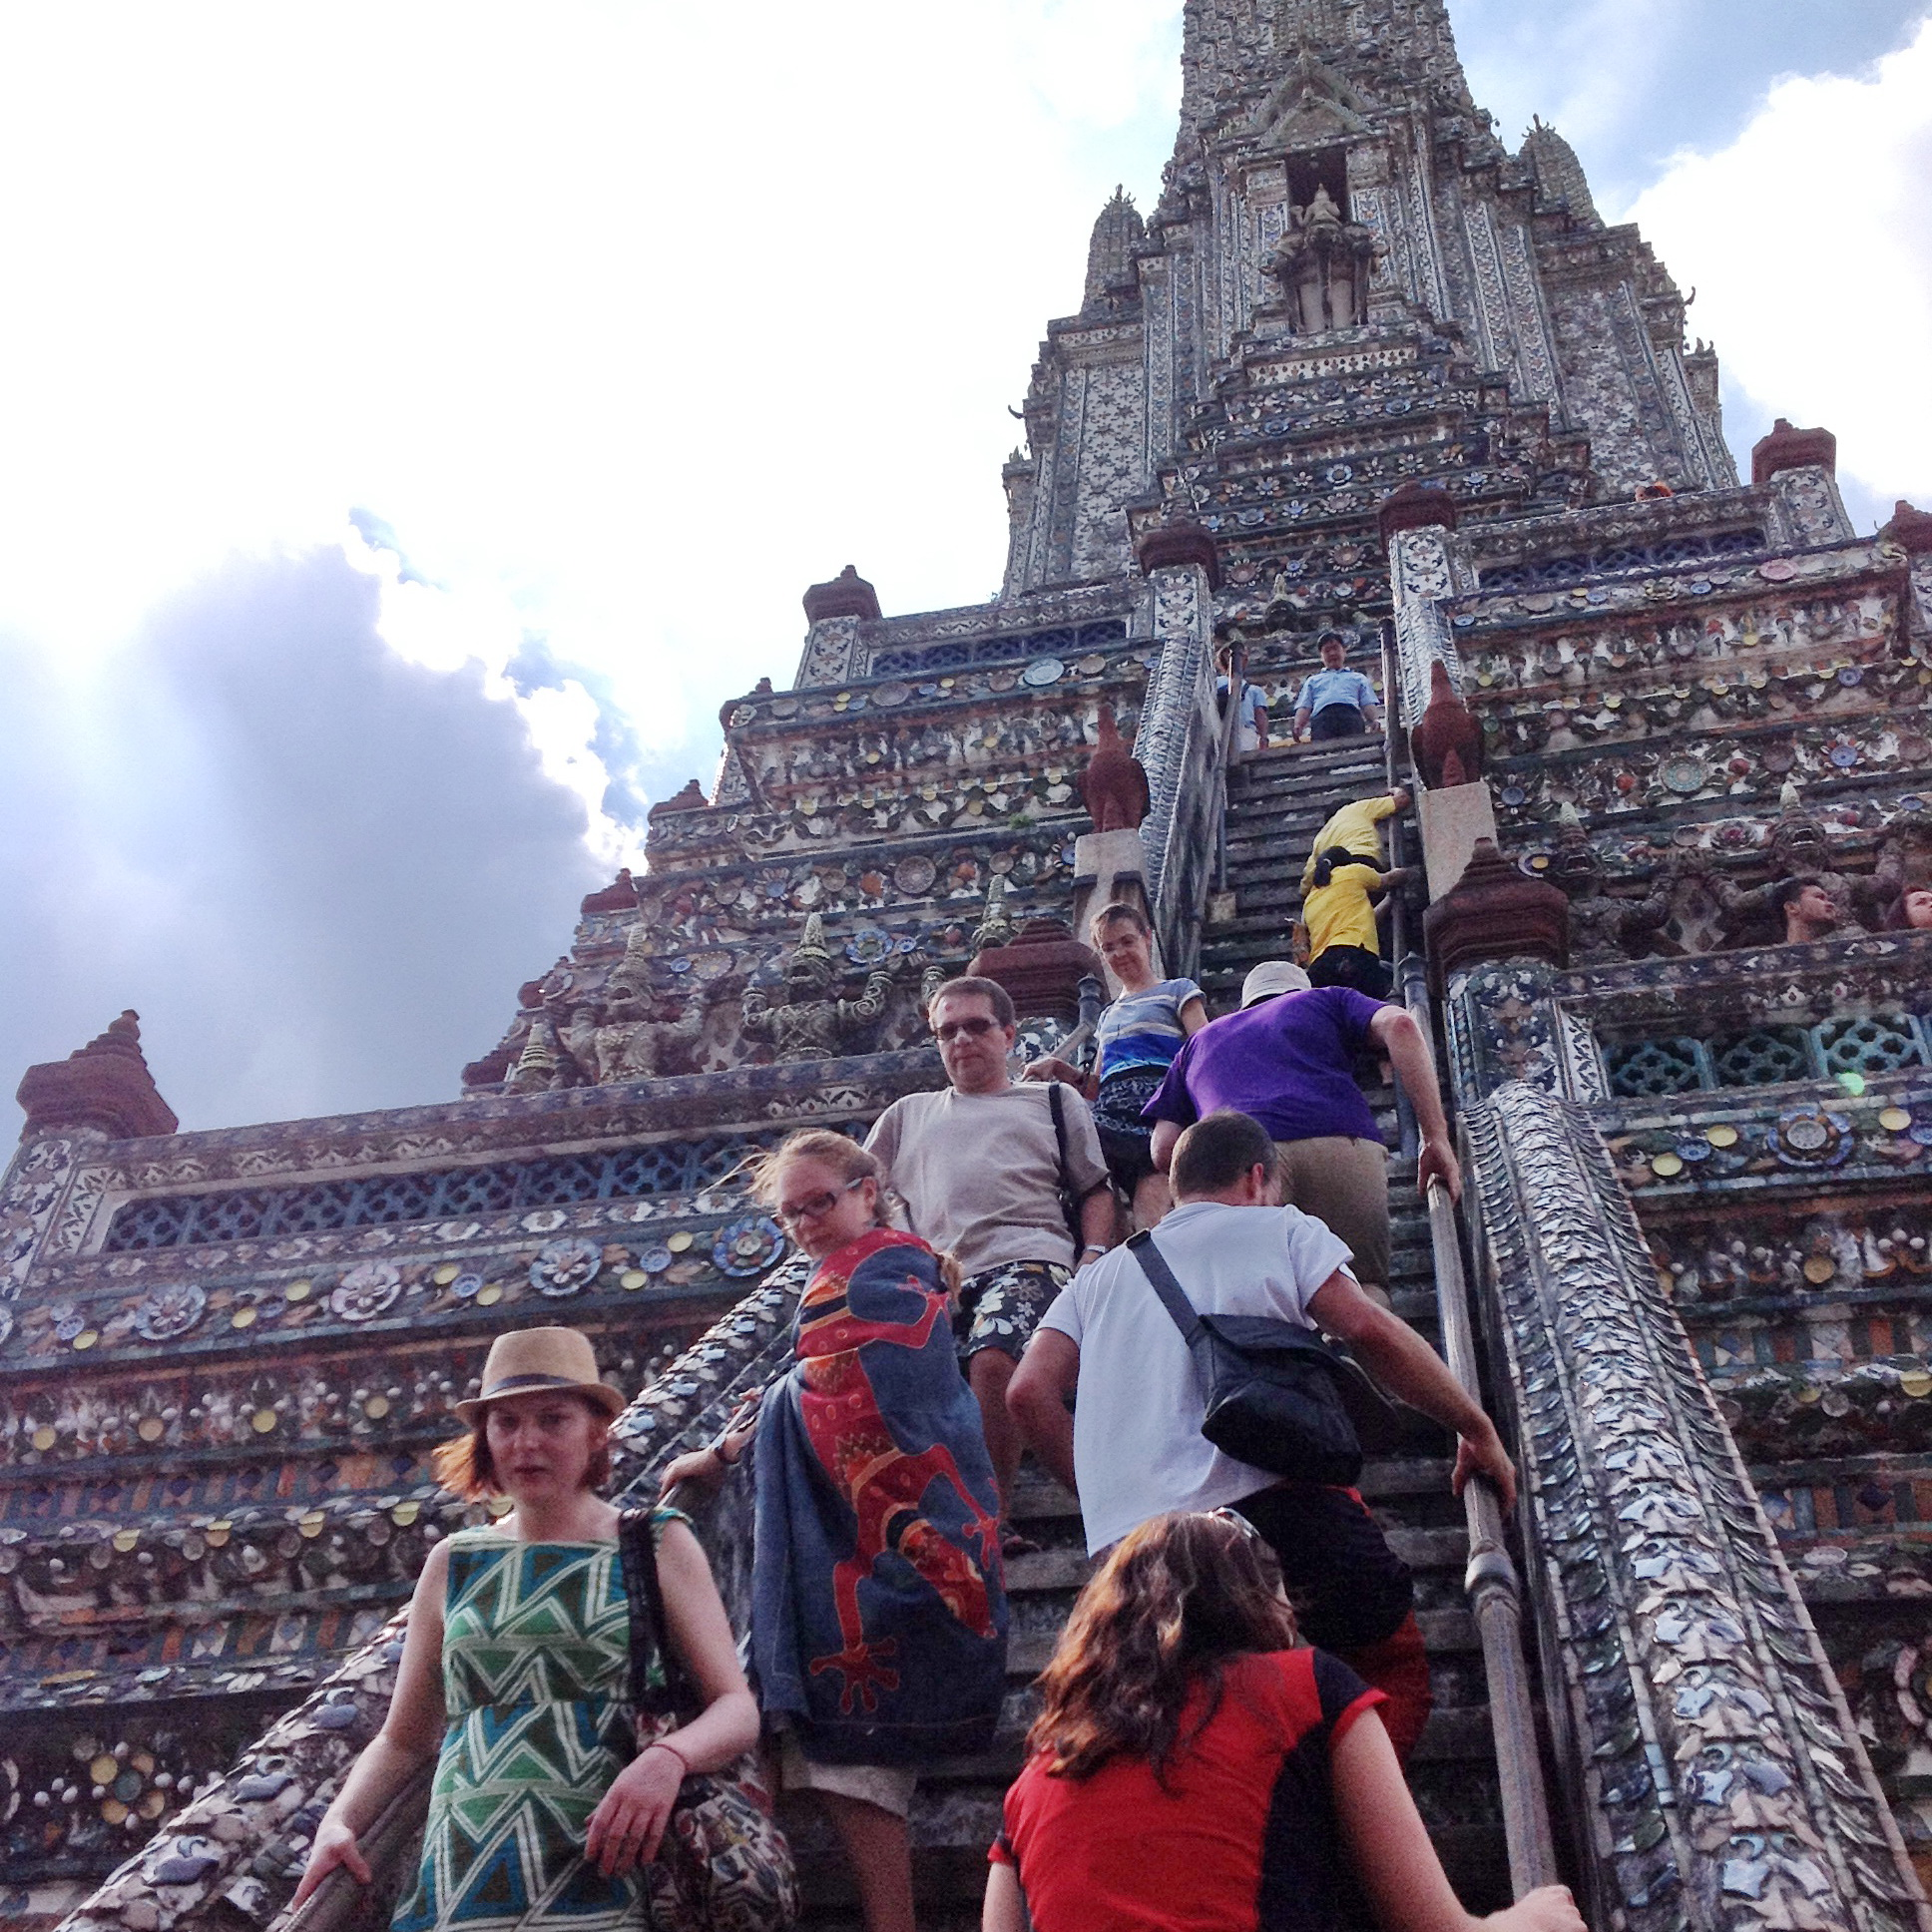 Climbing up Wat Arun